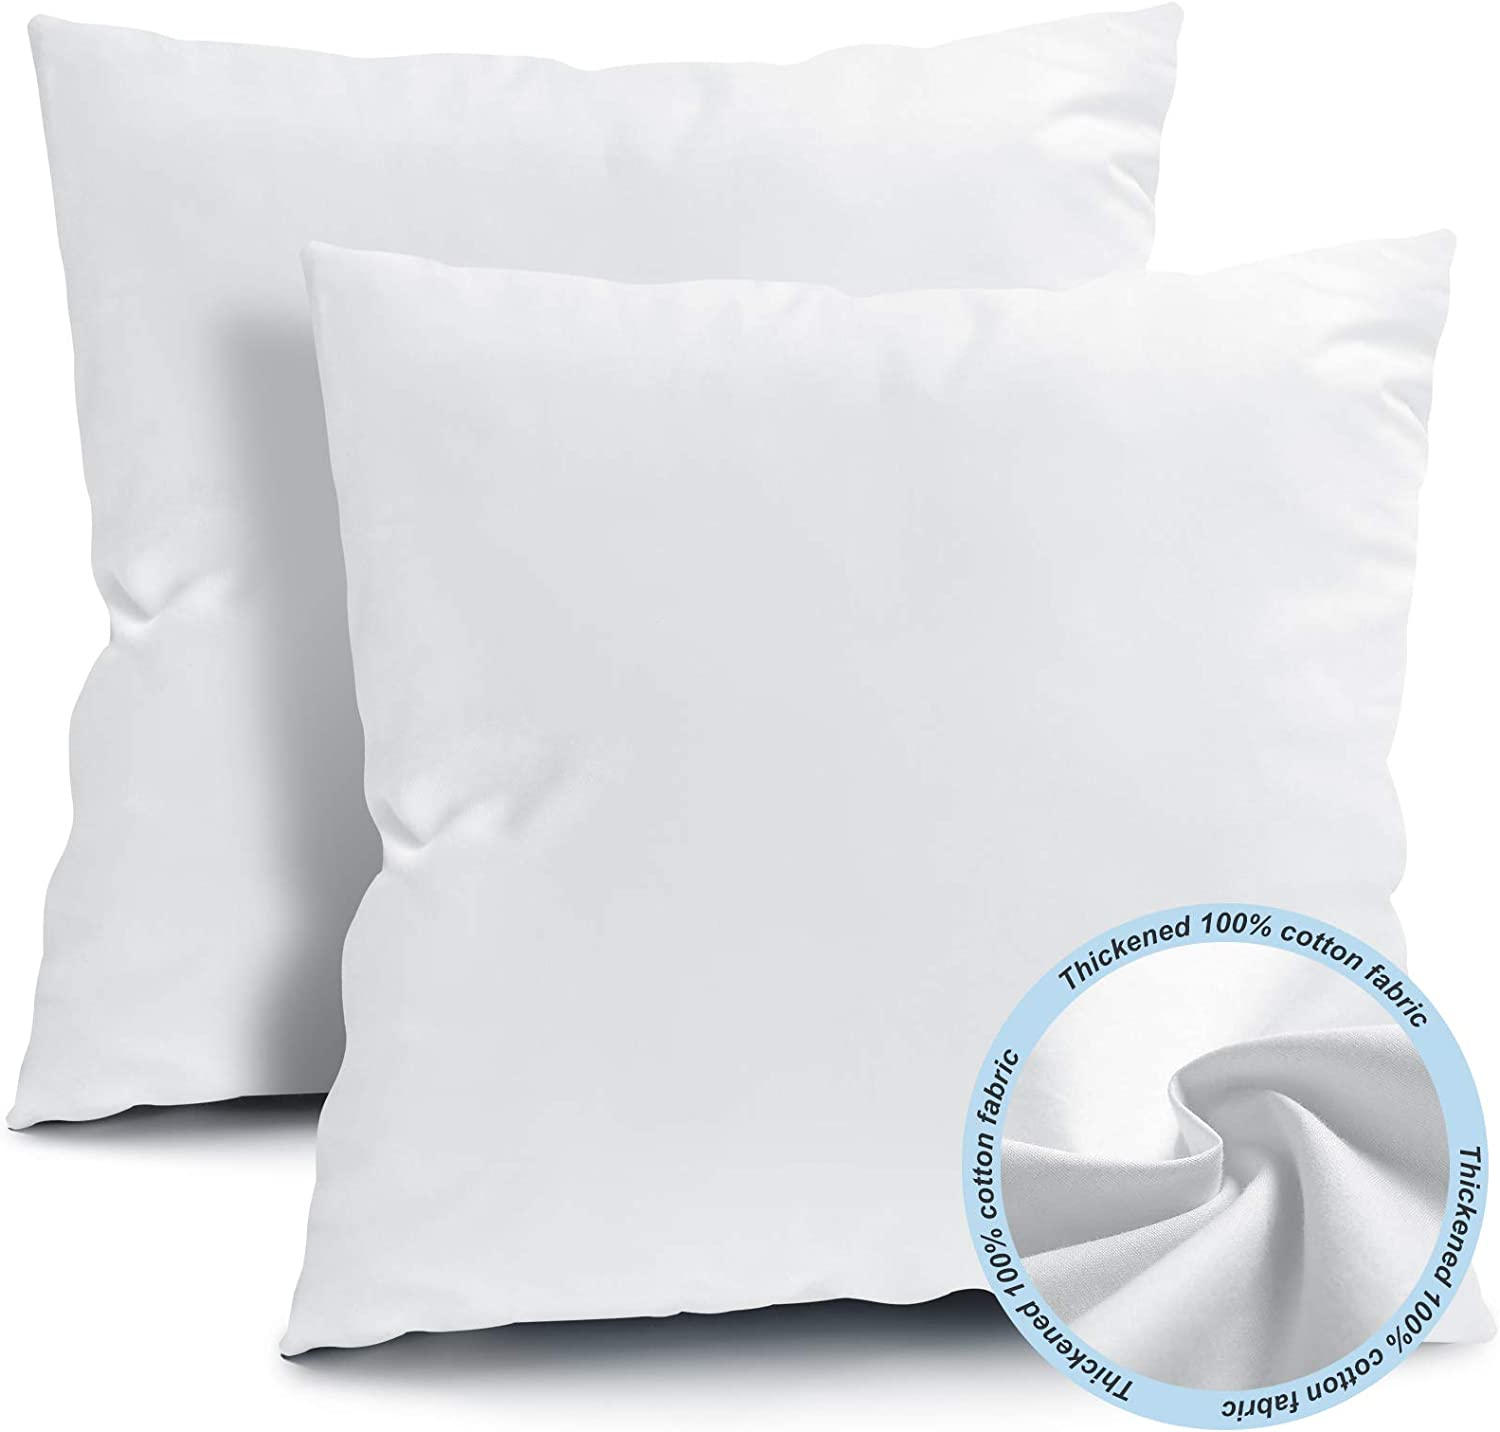 Fixwal 16x16 Inches Outdoor Throw Pillow Inserts, Square Form Couch Sham Cushion Stuffer Decorative Pillows for Bed Living Room Garden Patio Bench (White), Pack of 2: Kitchen & Dining